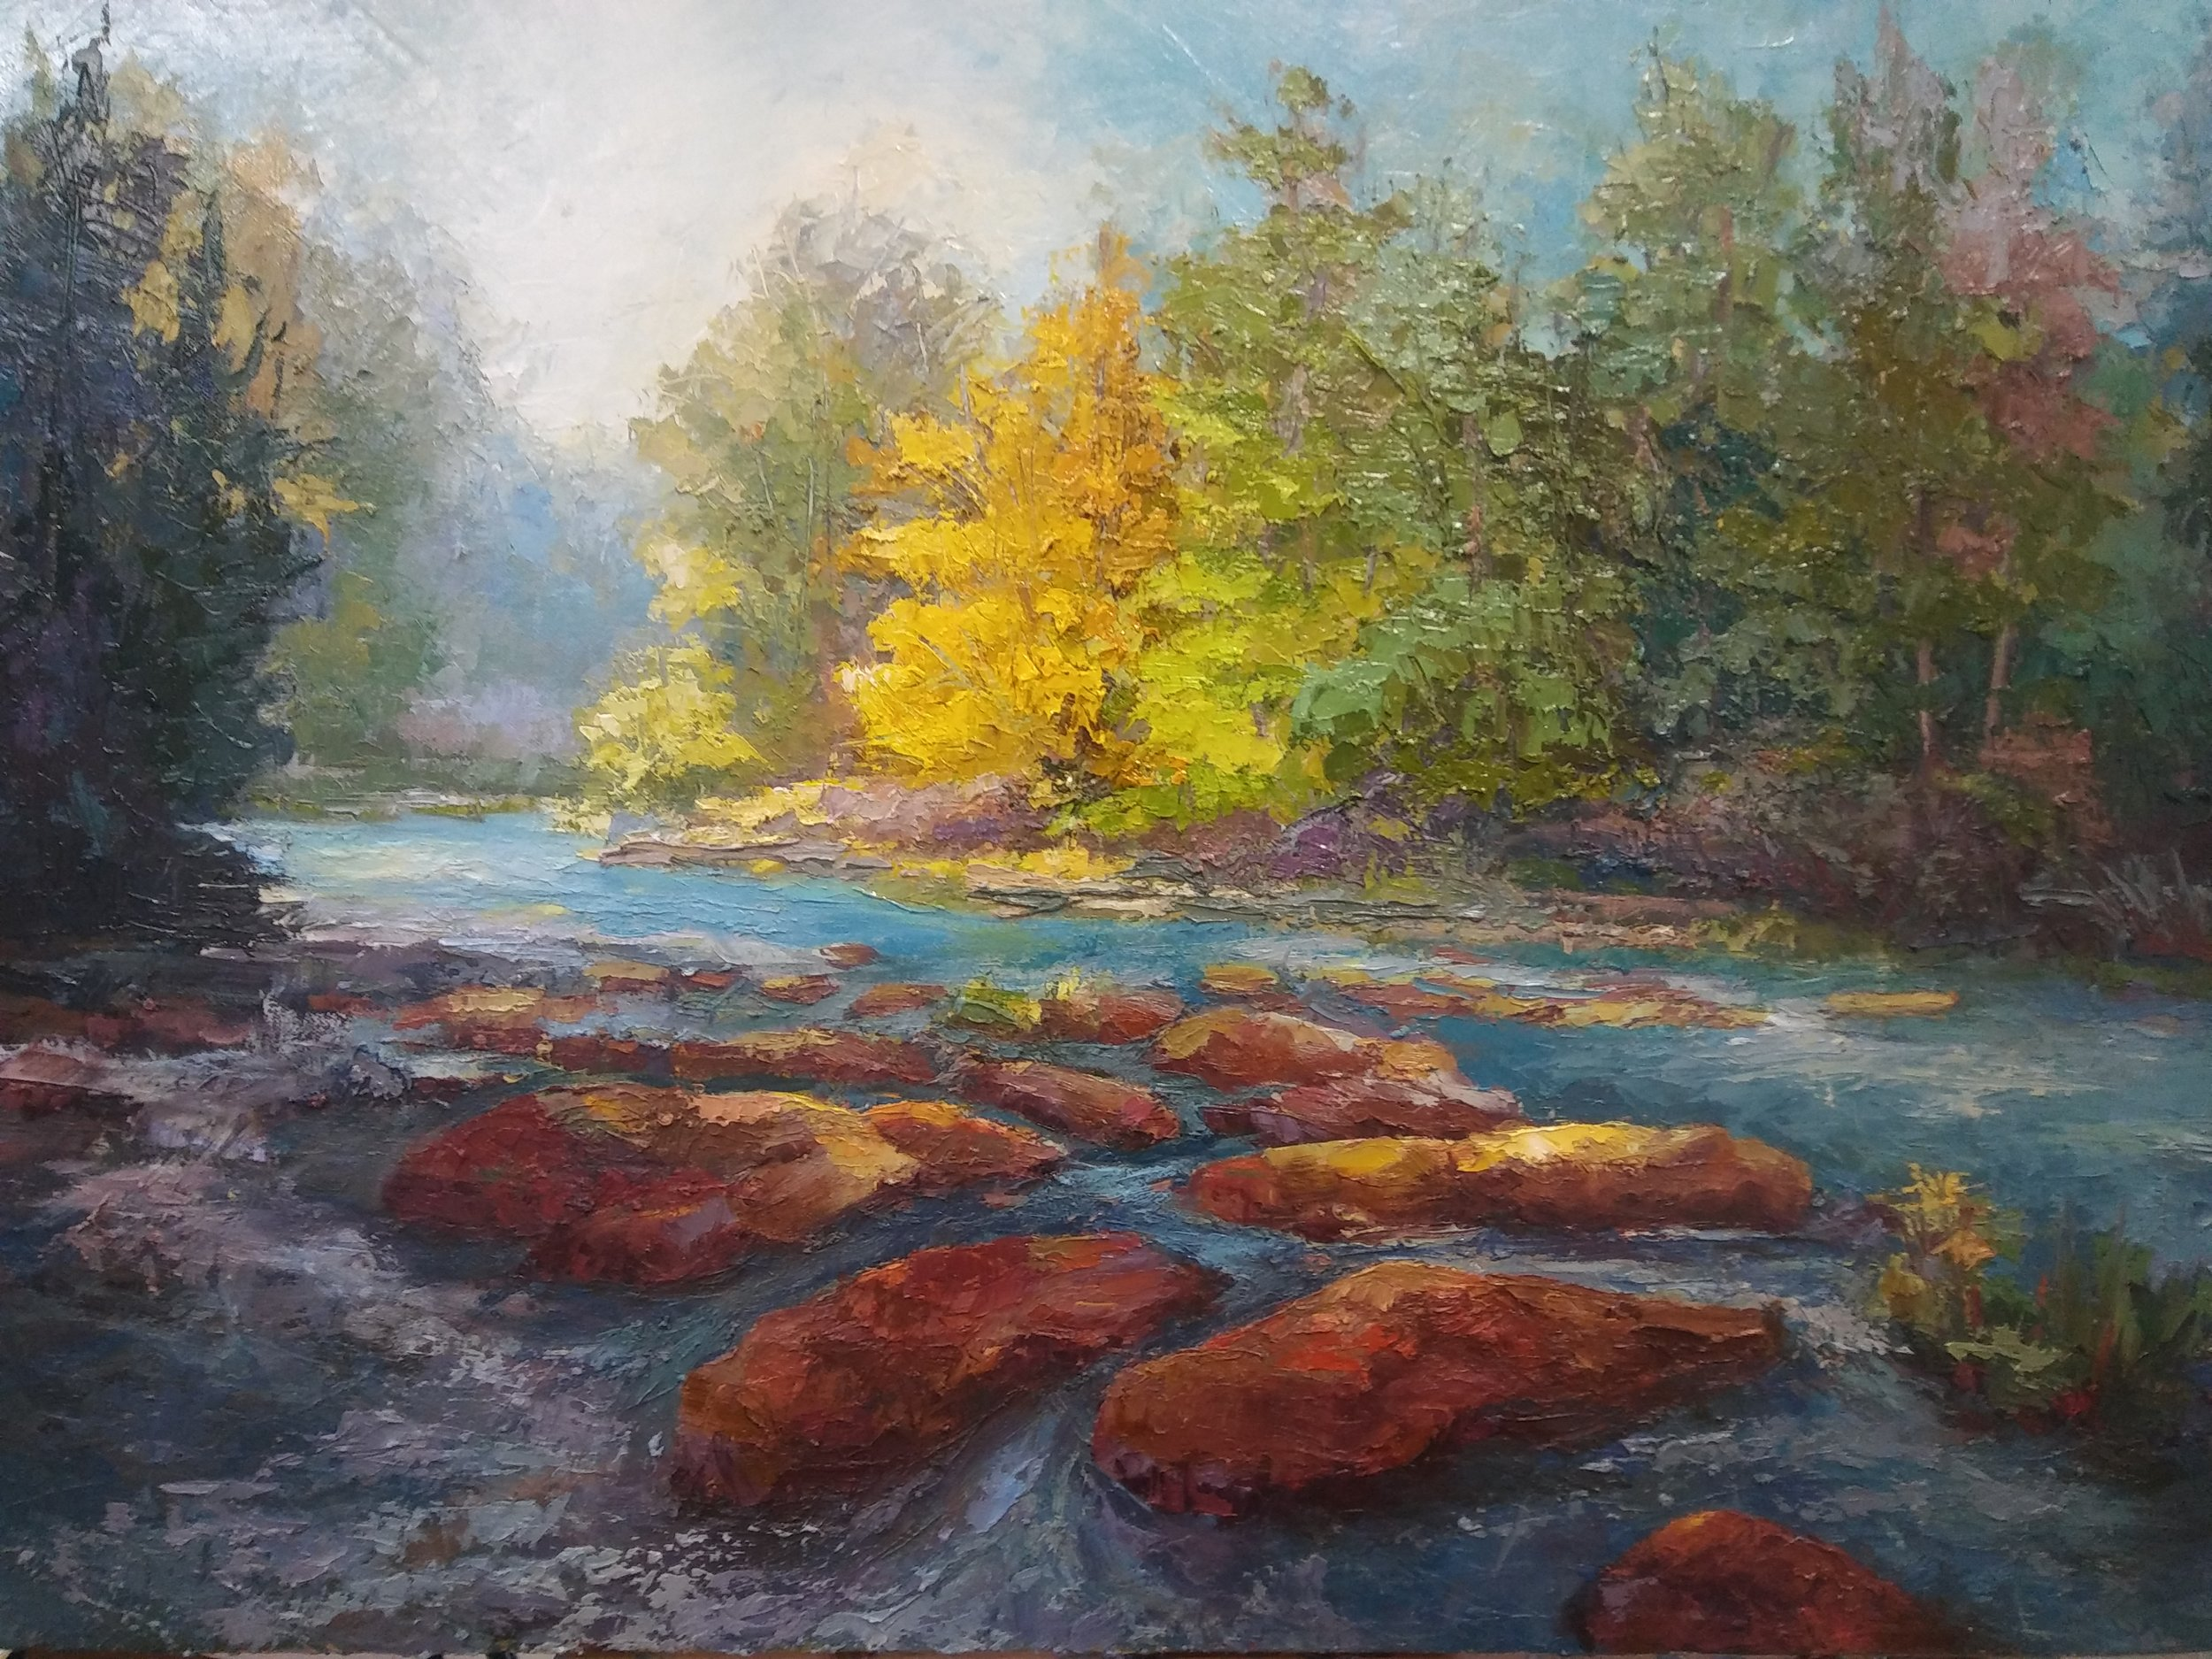 Tallulah River 24 x 36 oil on canvas